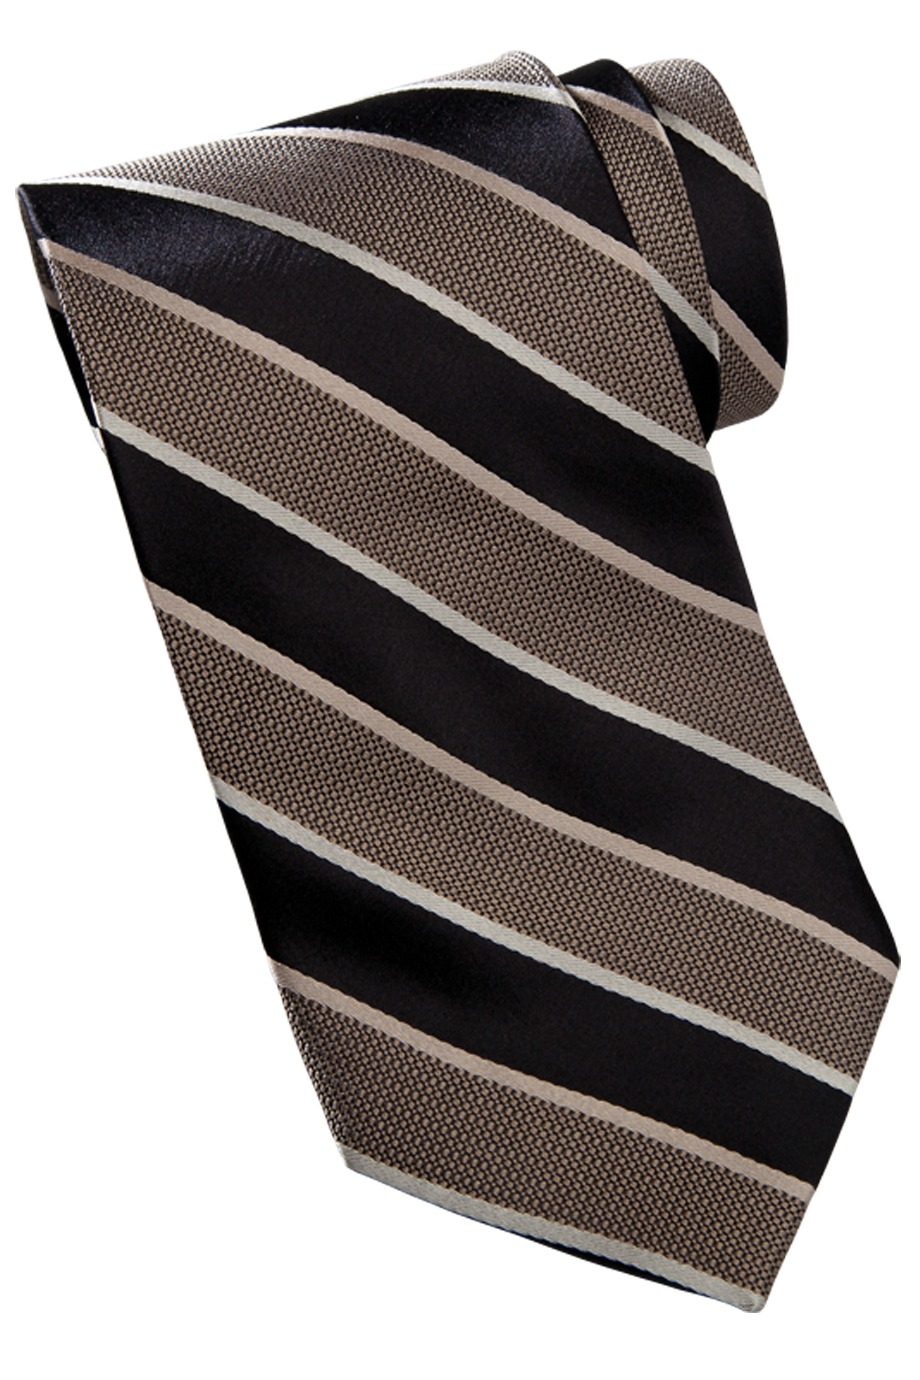 Edwards Garment SW00 - Wide Stripe Tie